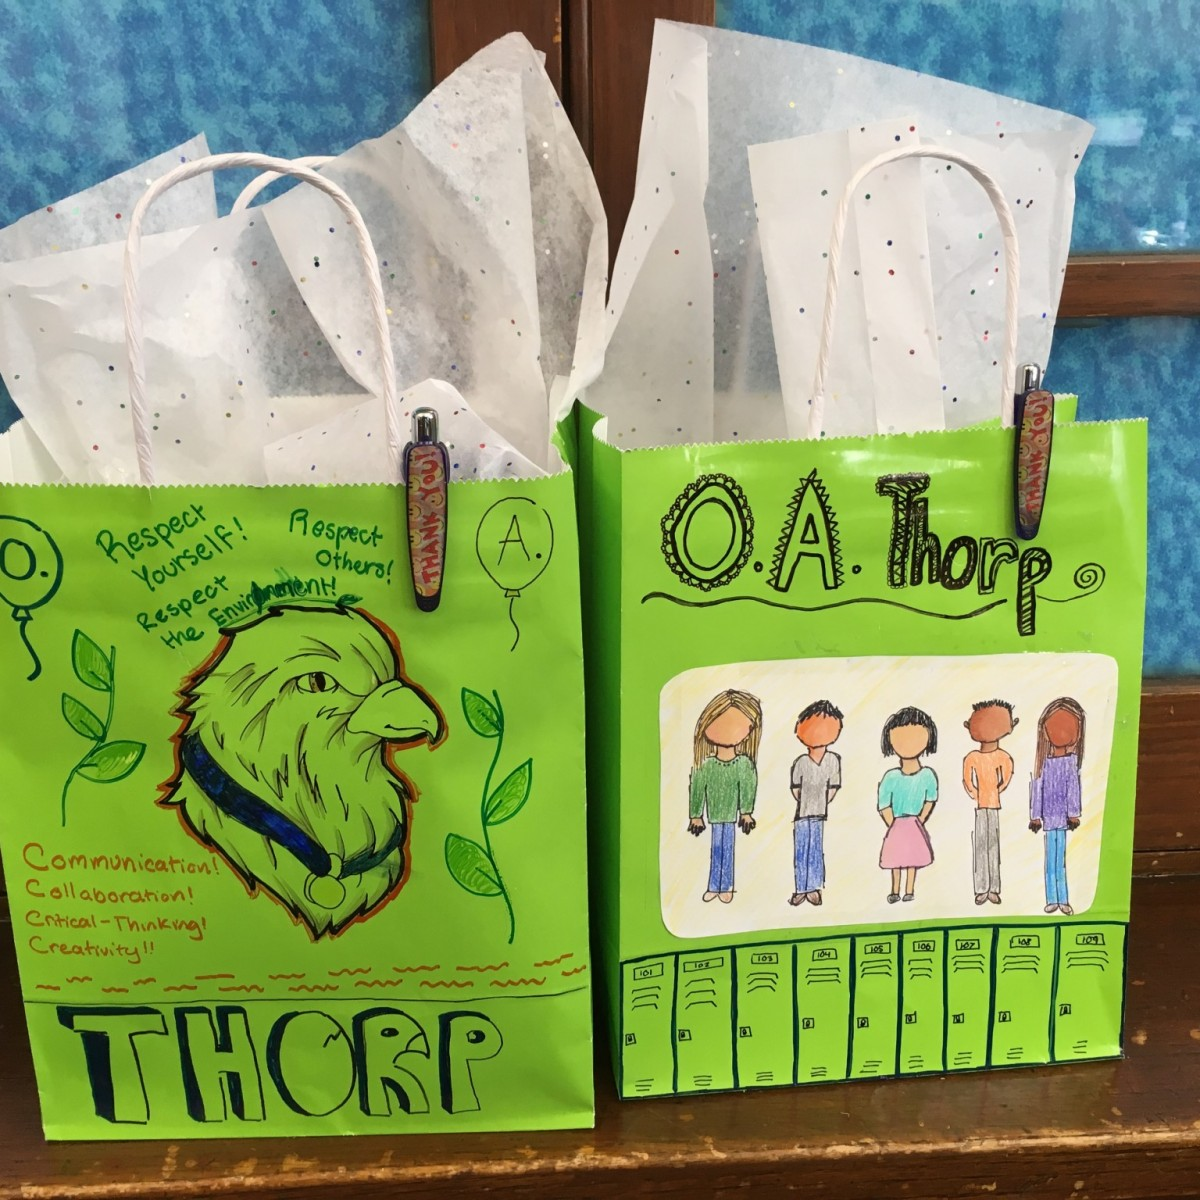 Thorp Goodie Bags Created By Our Students.